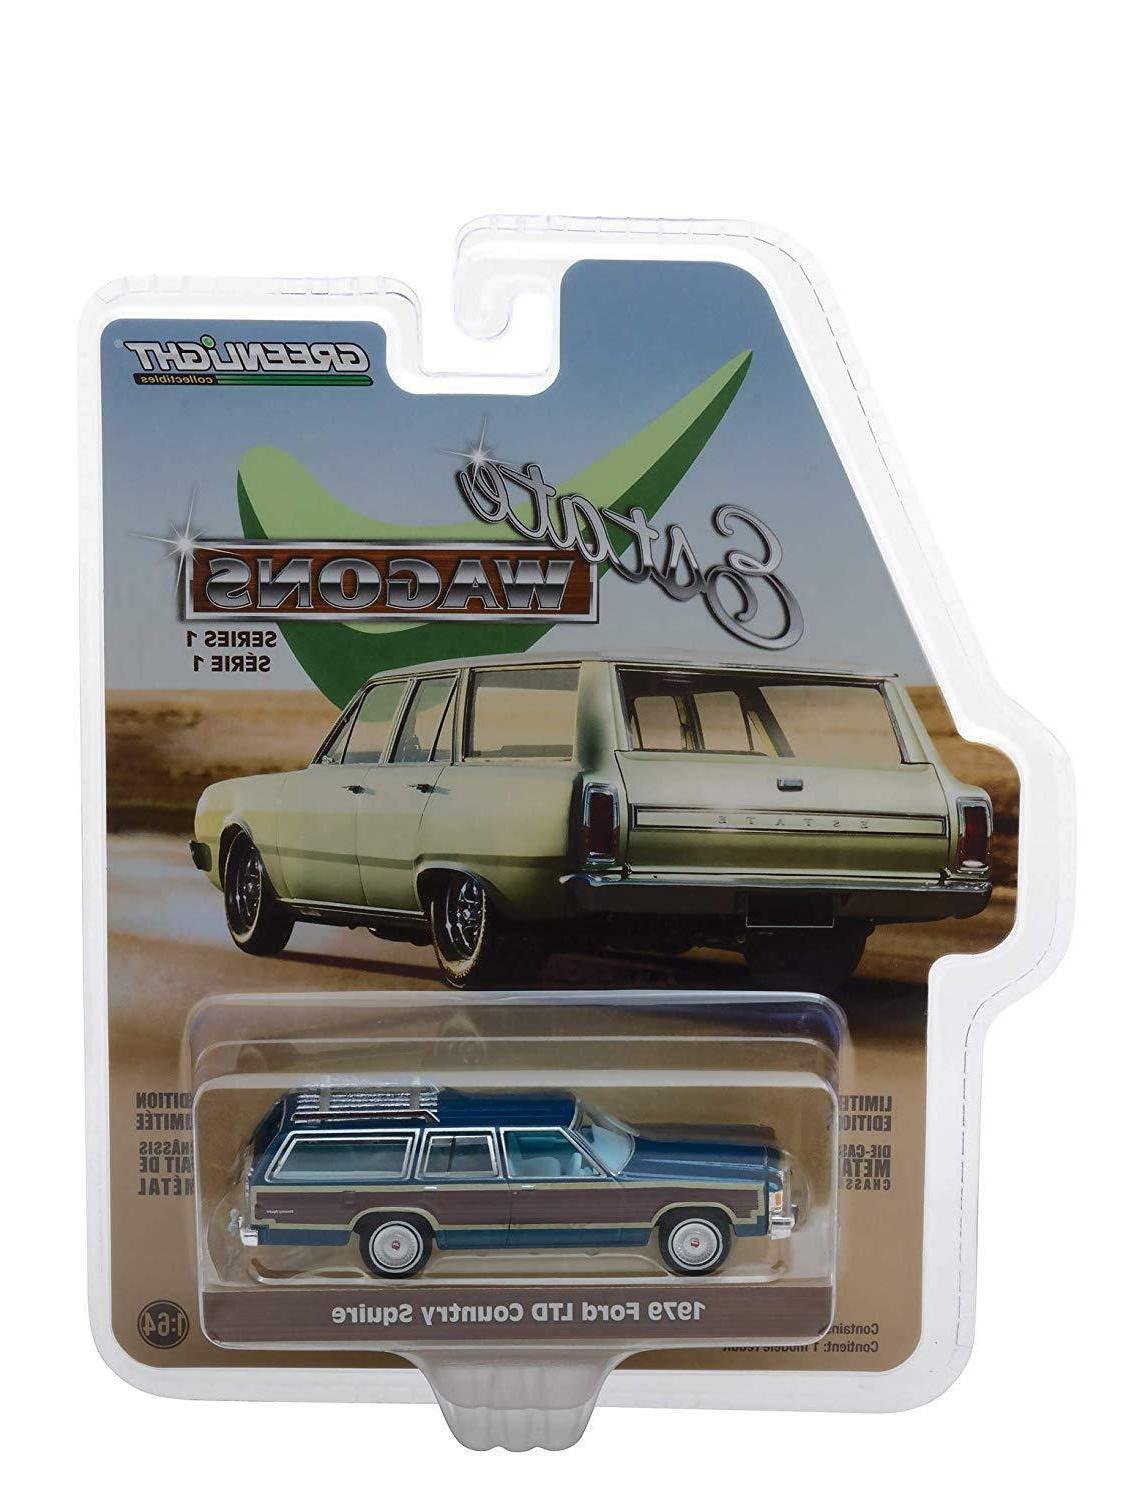 1 64 estate wagons s1 1979 ford